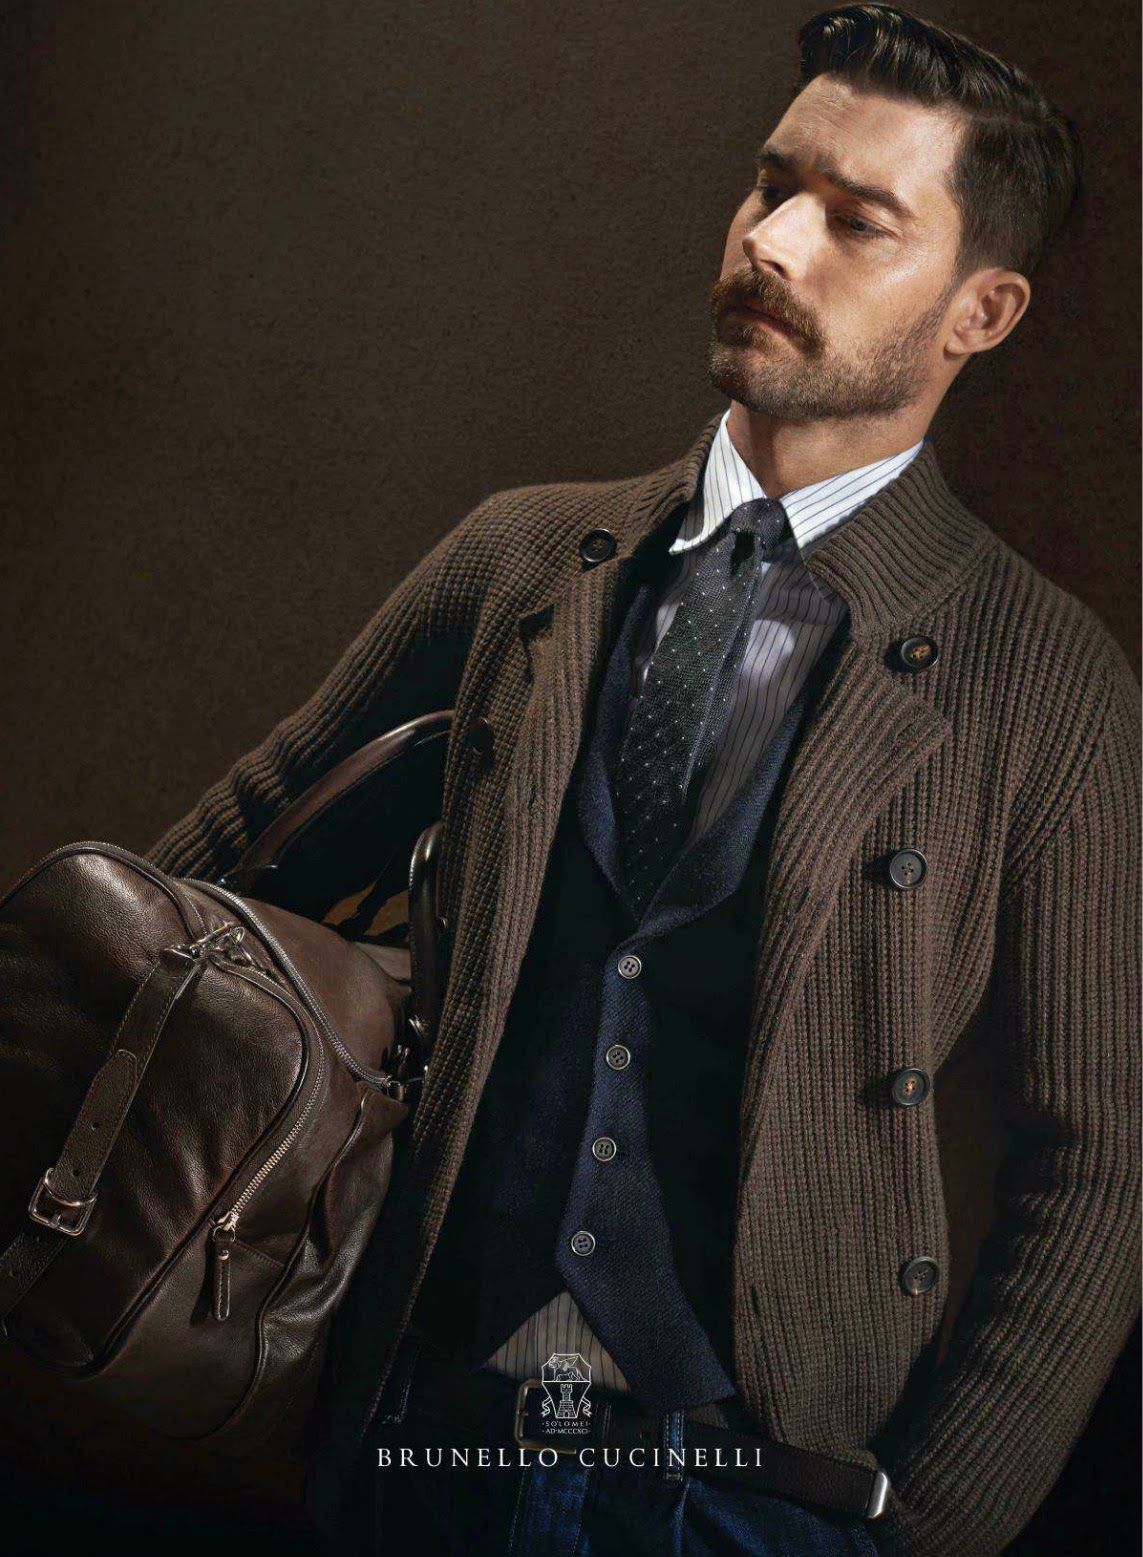 The Essentialist - Fashion Advertising Updated Daily: Brunello Cucinelli Ad Campaign Fall/Winter 2014/2015